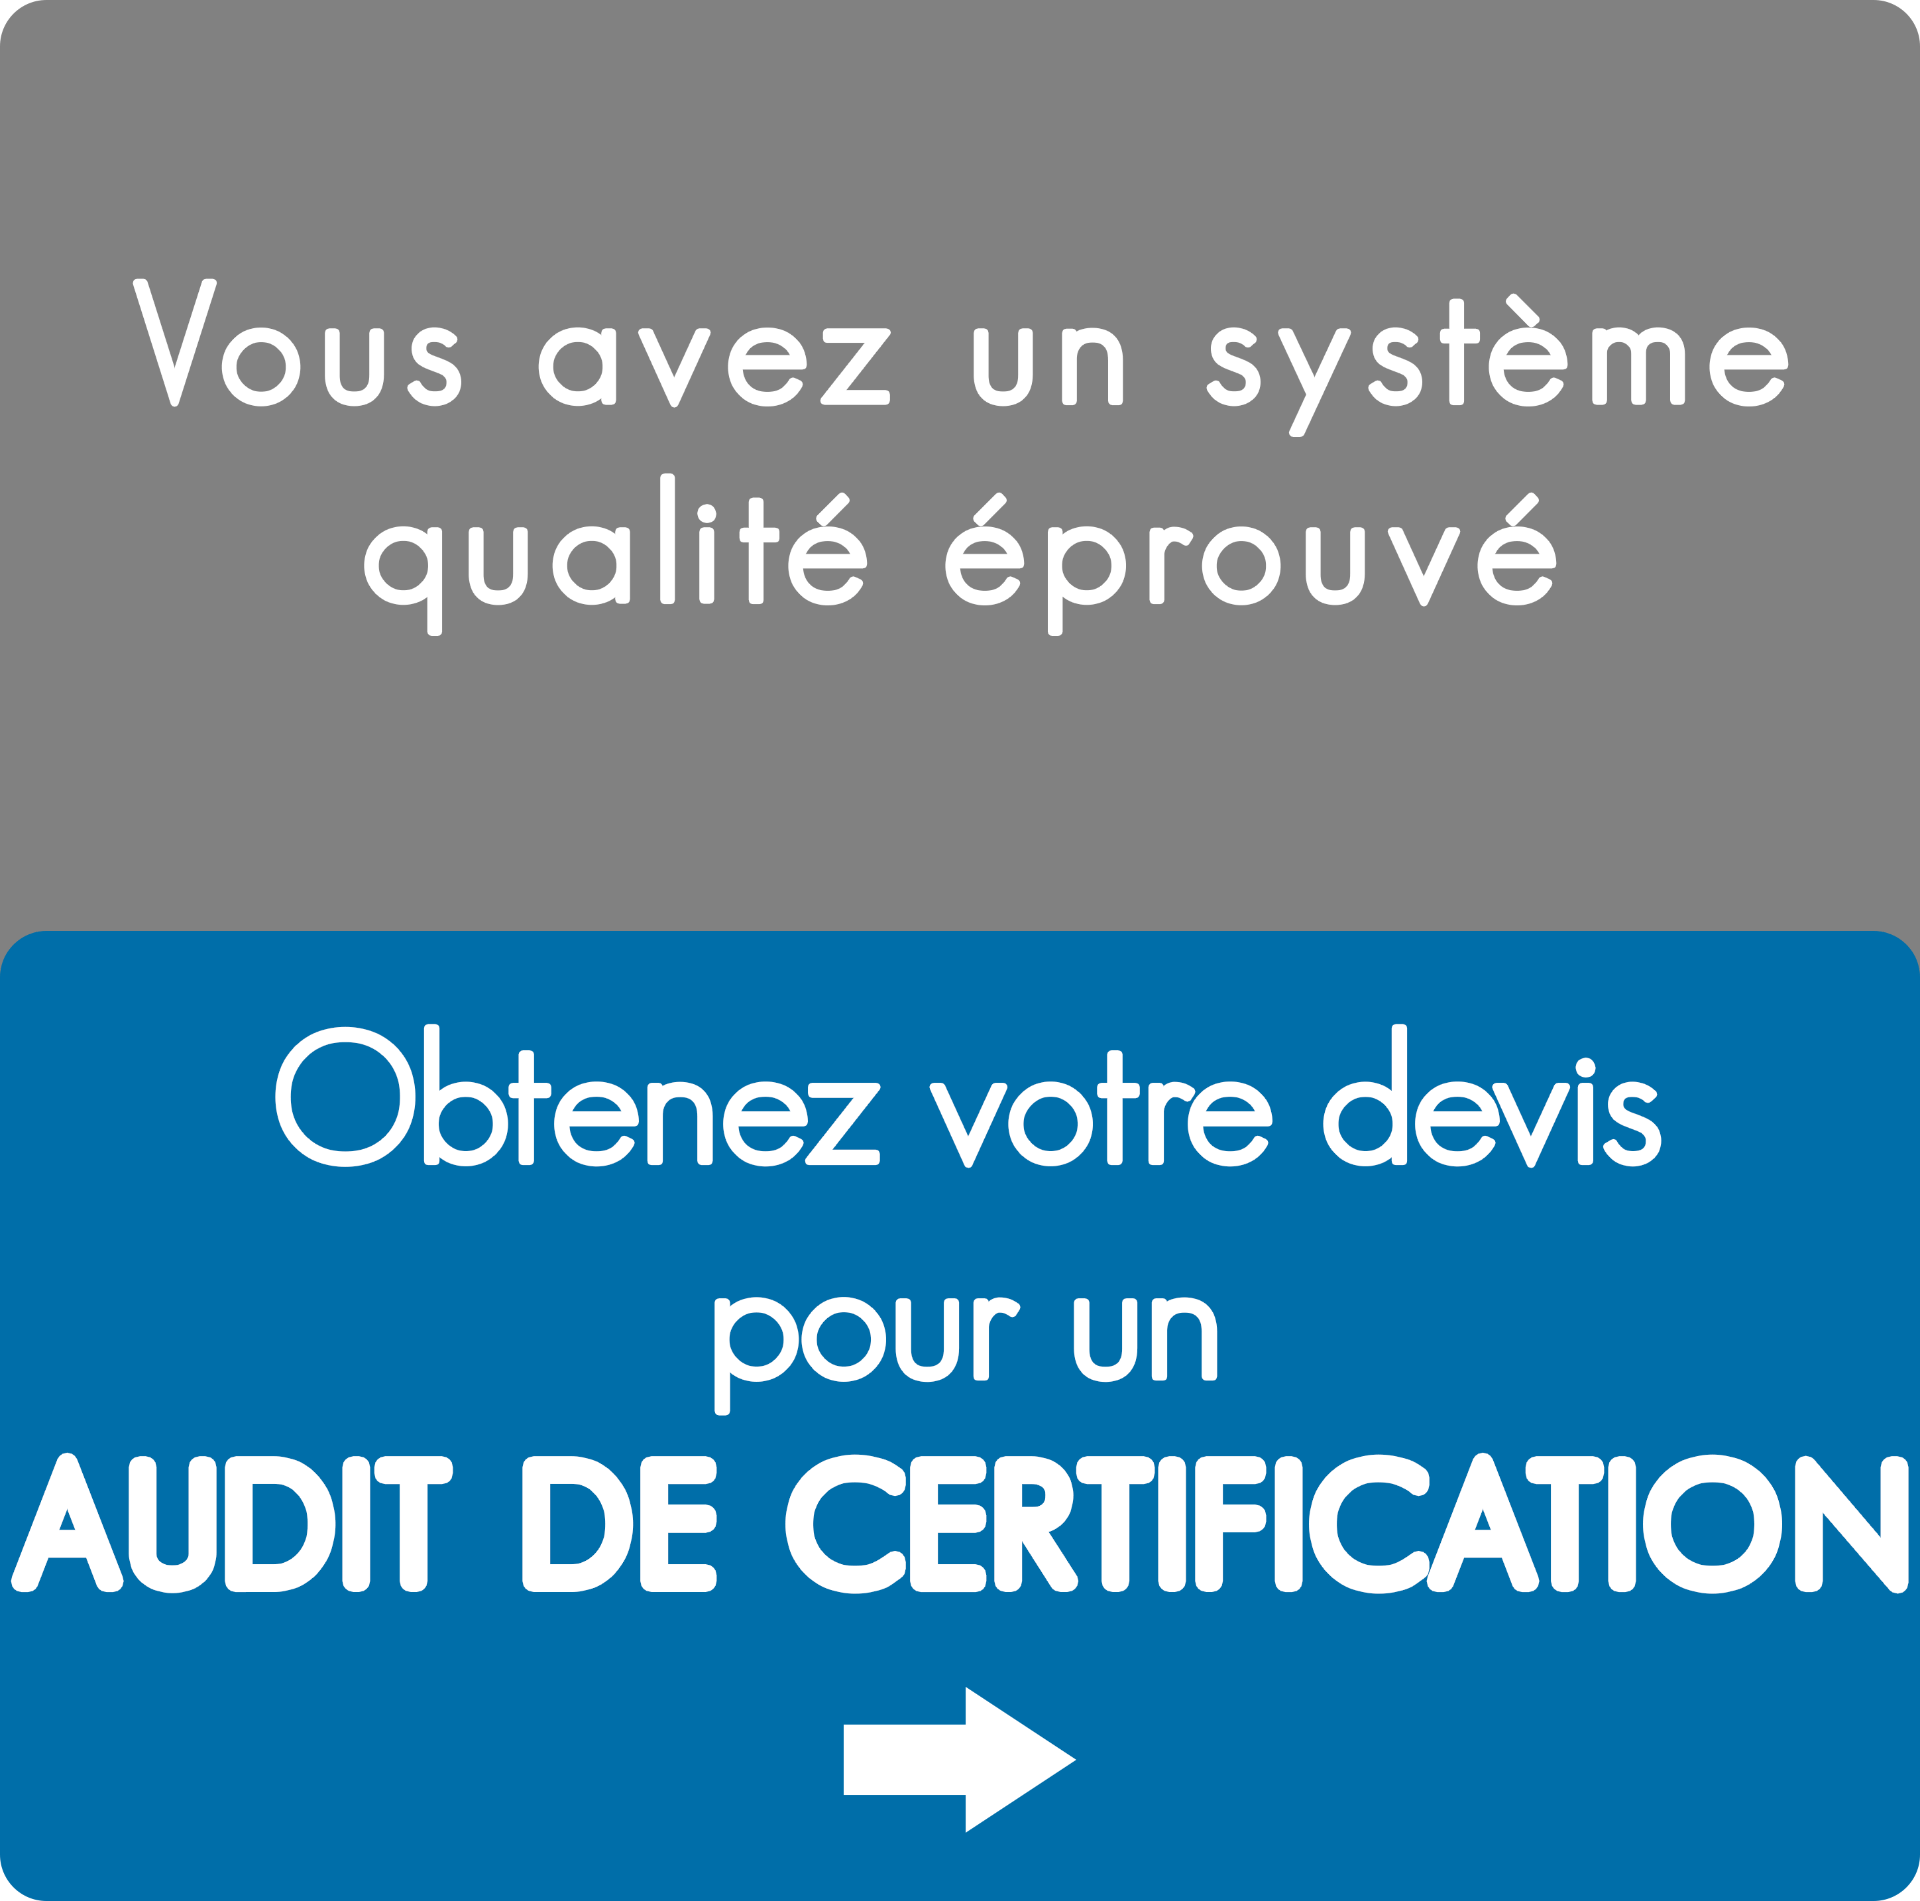 Audit de certification